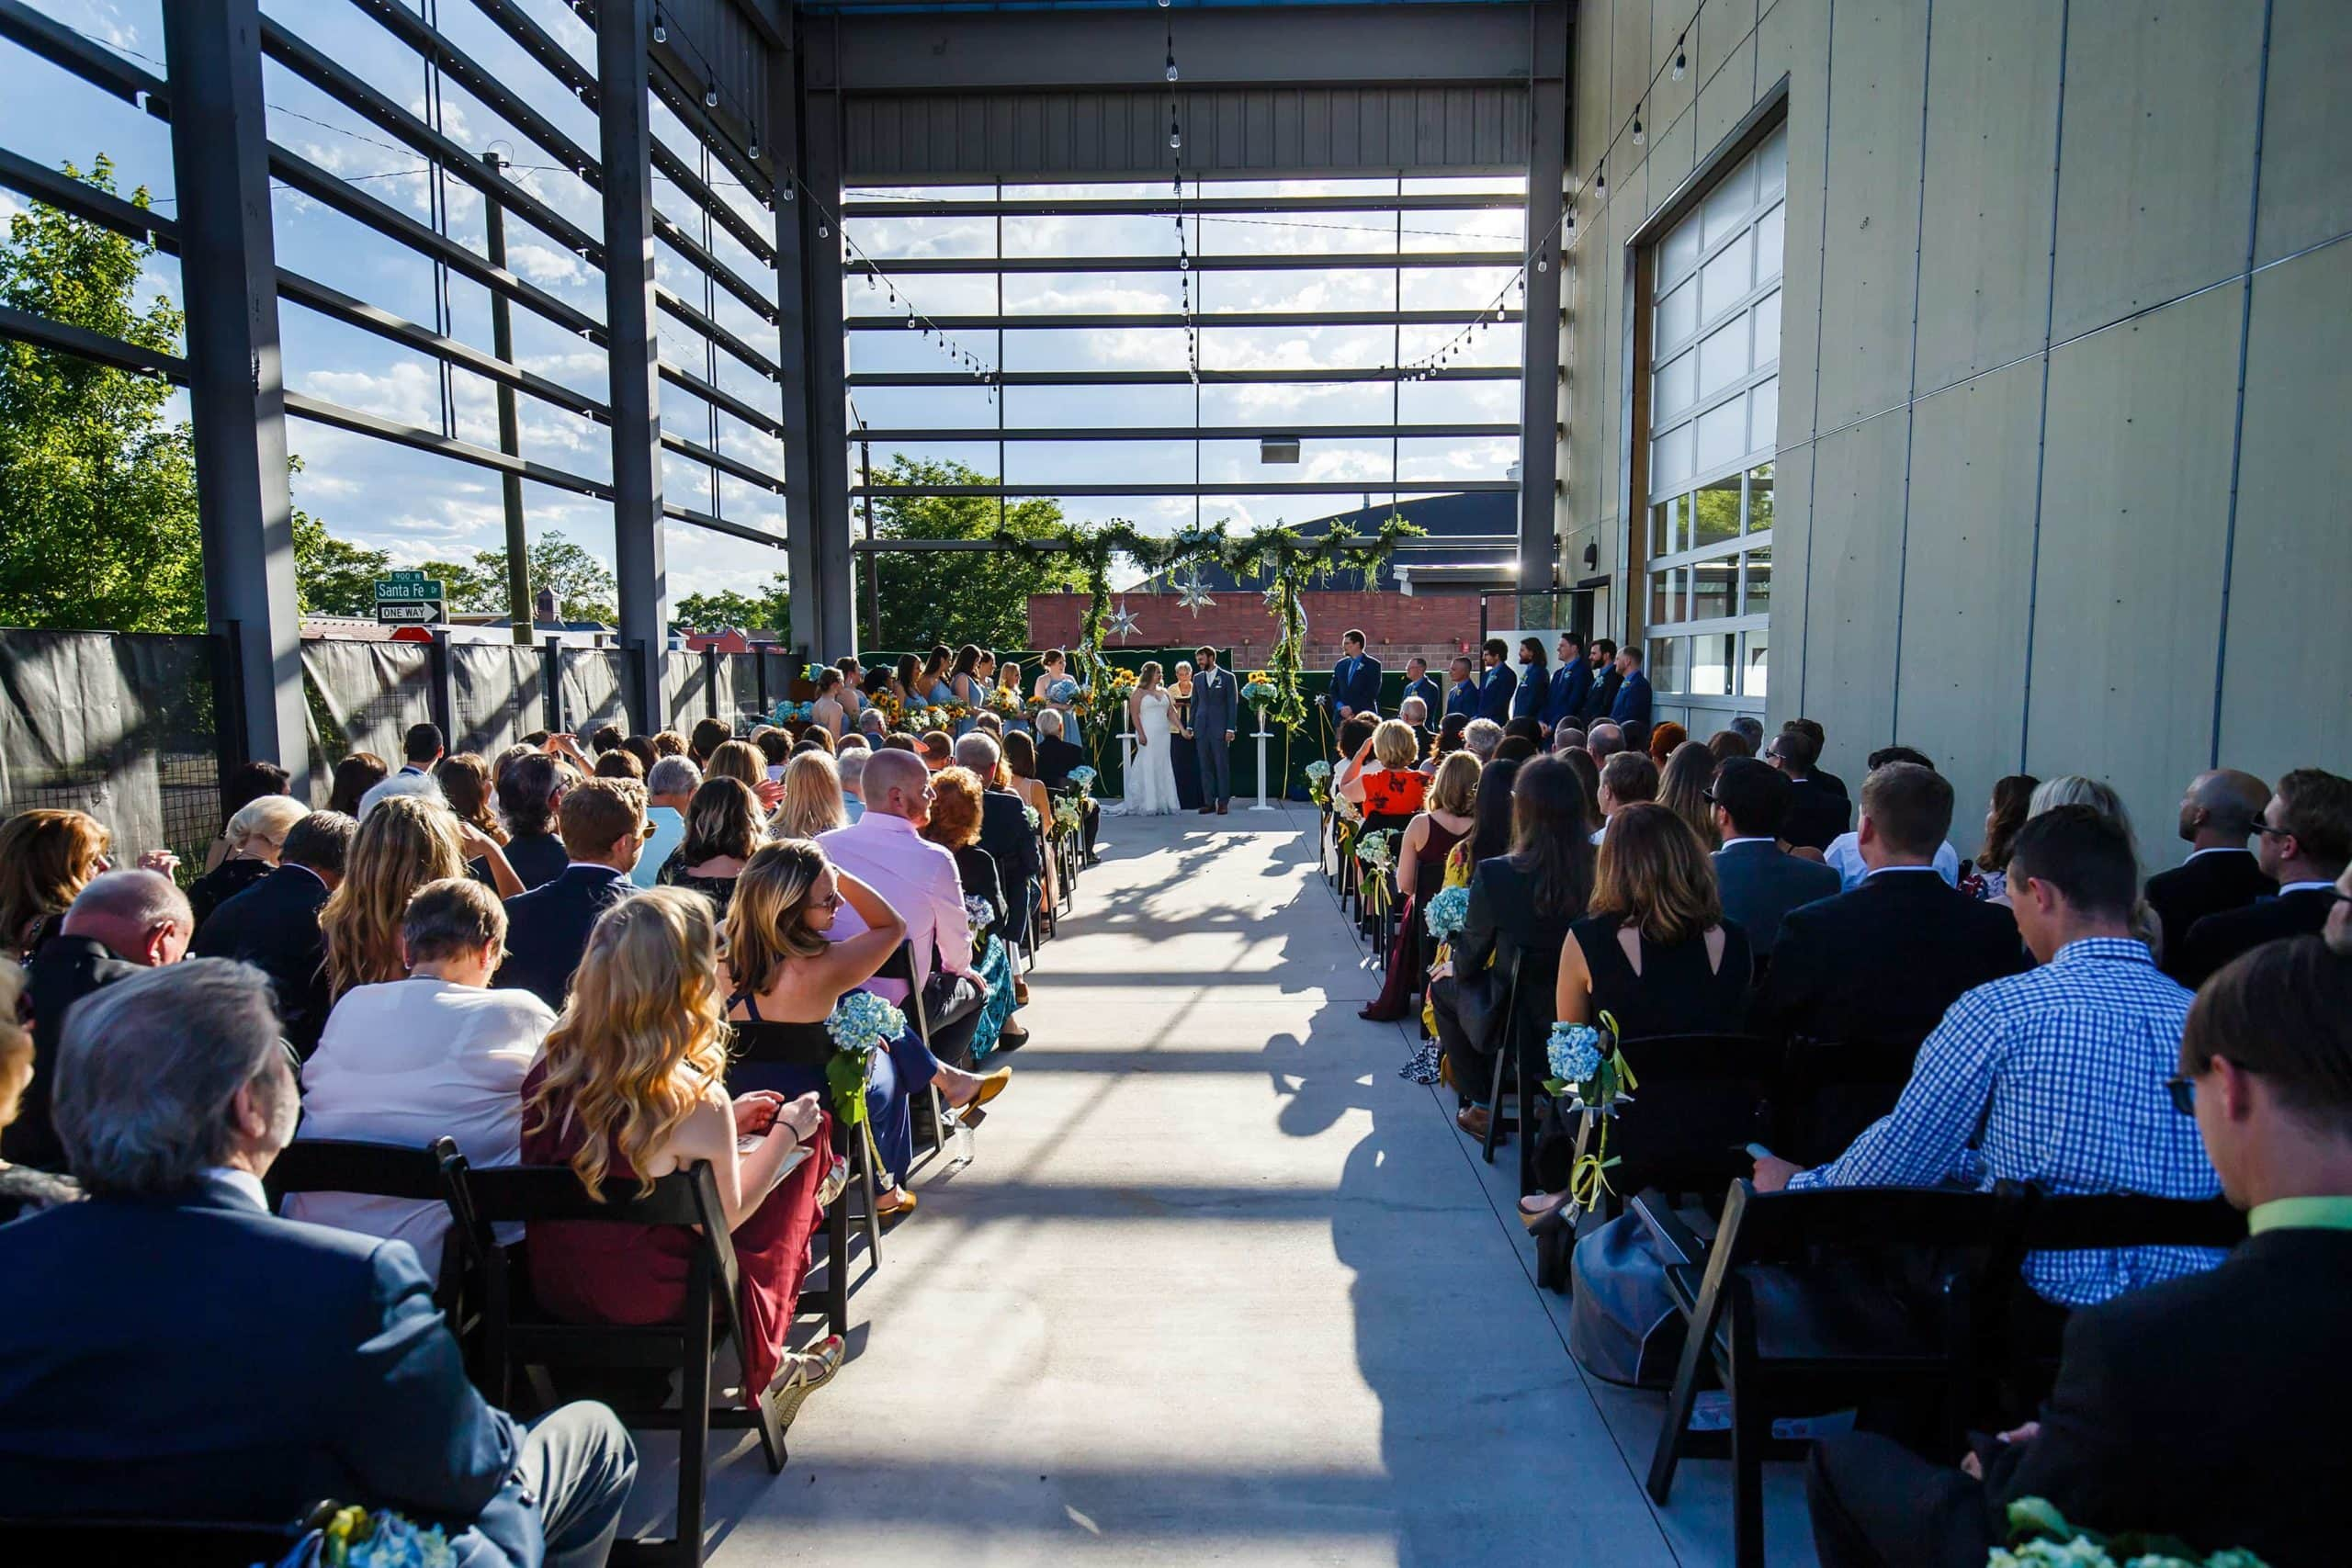 Coza and Joel's Space Gallery wedding ceremony on the patio in Denver